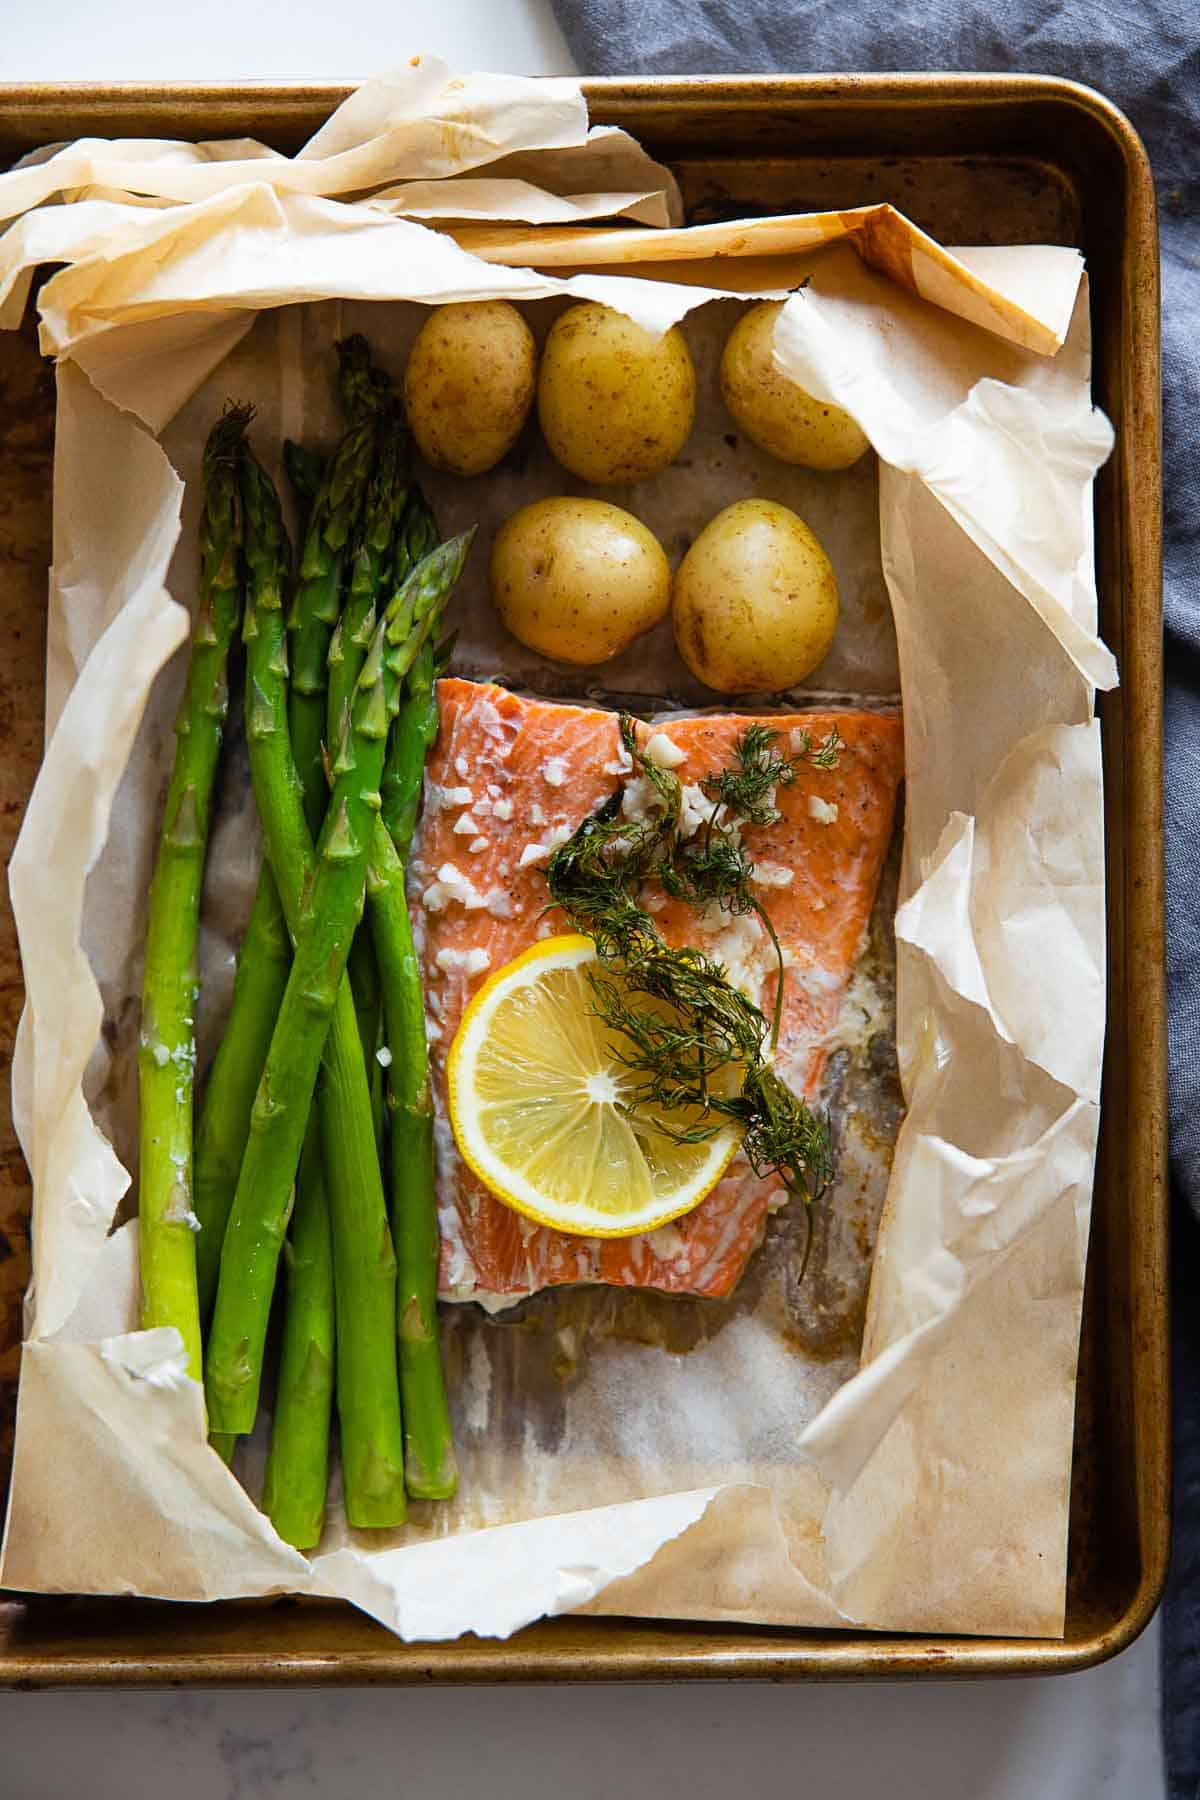 Asparagus, salmon, baby potatoes, a slice of lemon and dill in a ripped parchment paper bag on a baking sheet.